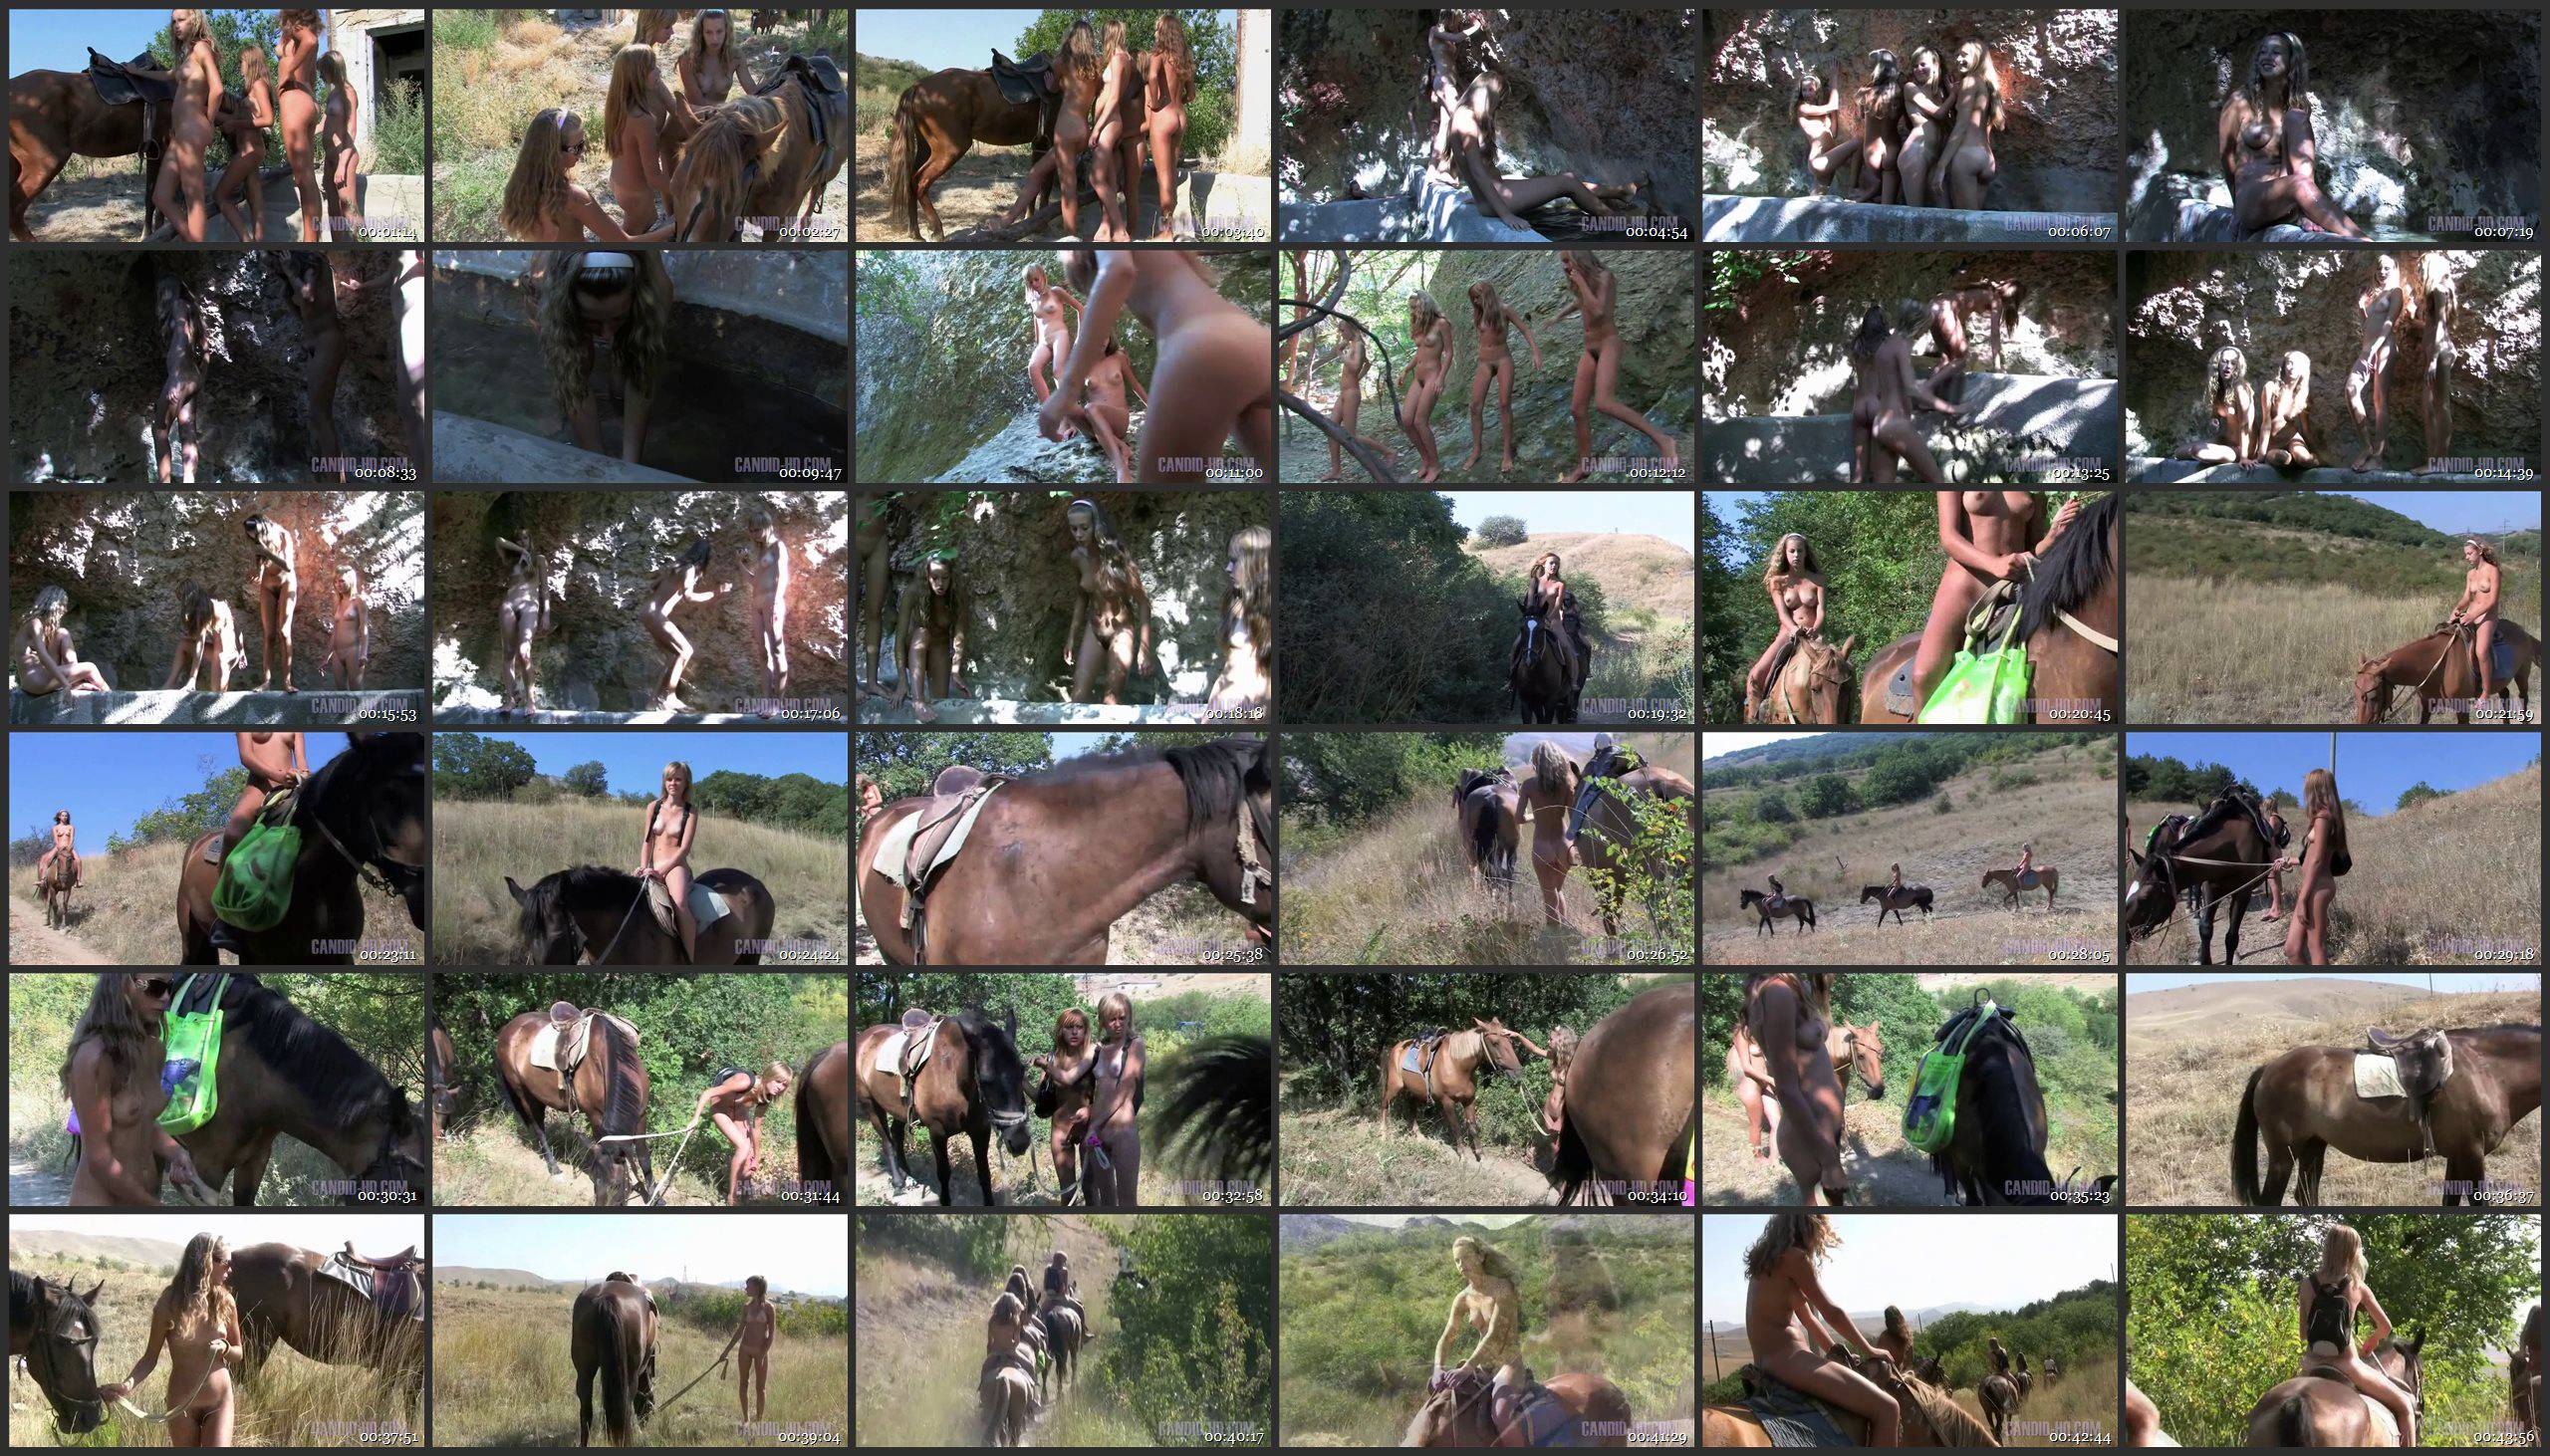 Candid-HD.com Country Horse Ride - Thumbnails